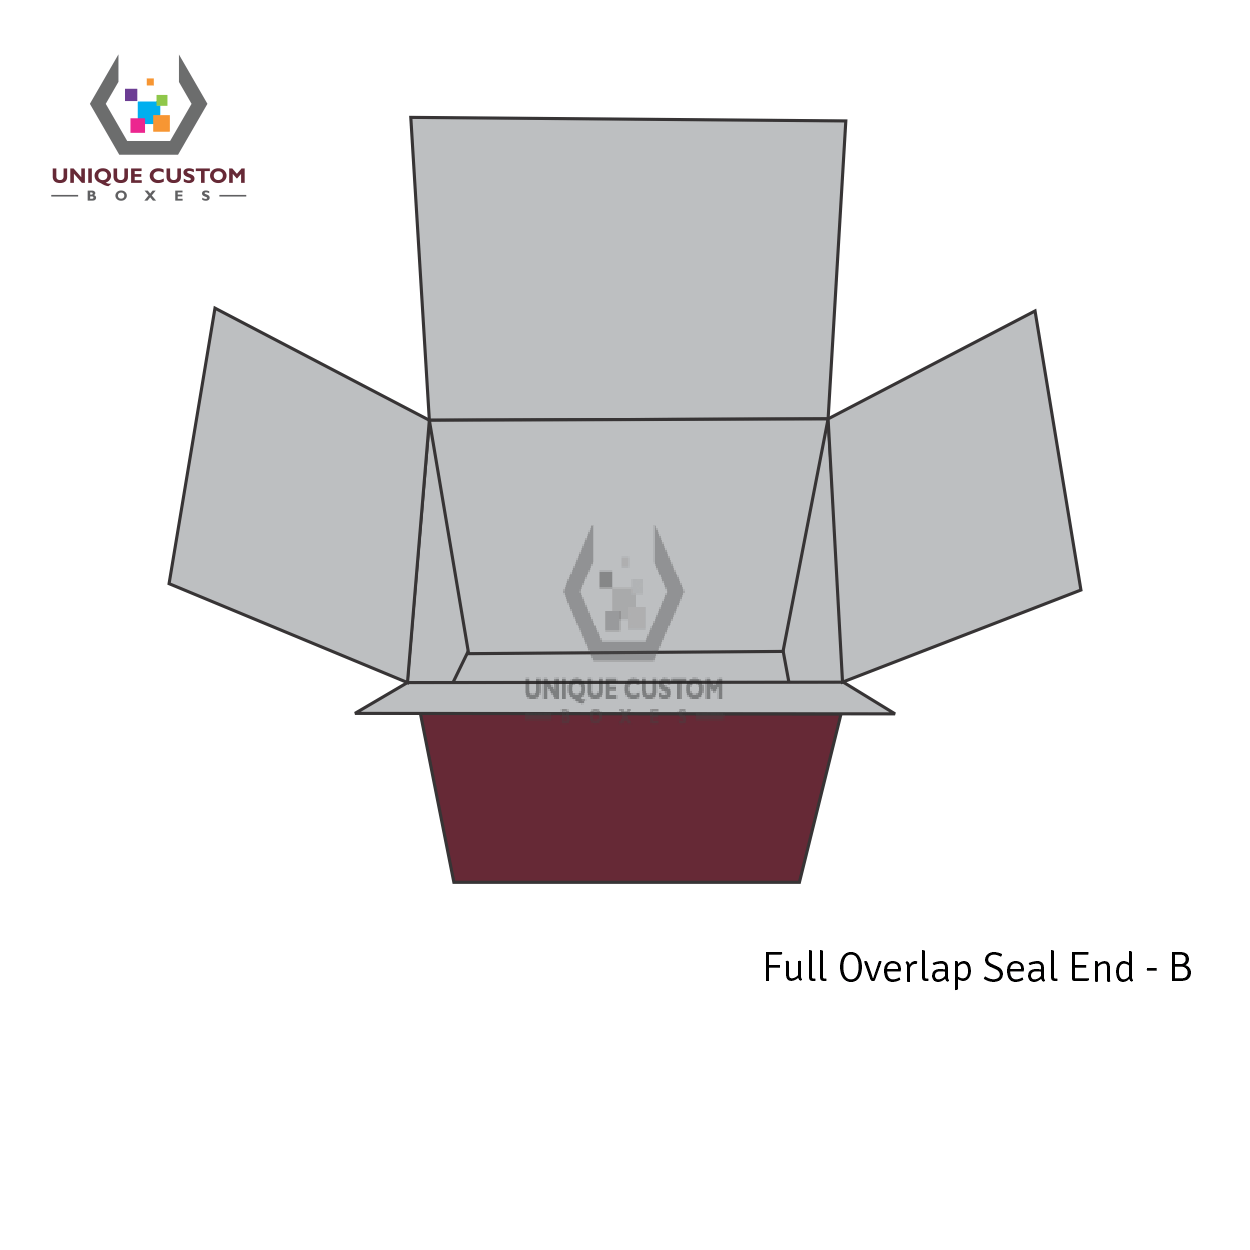 Full Overlap Seal End-1